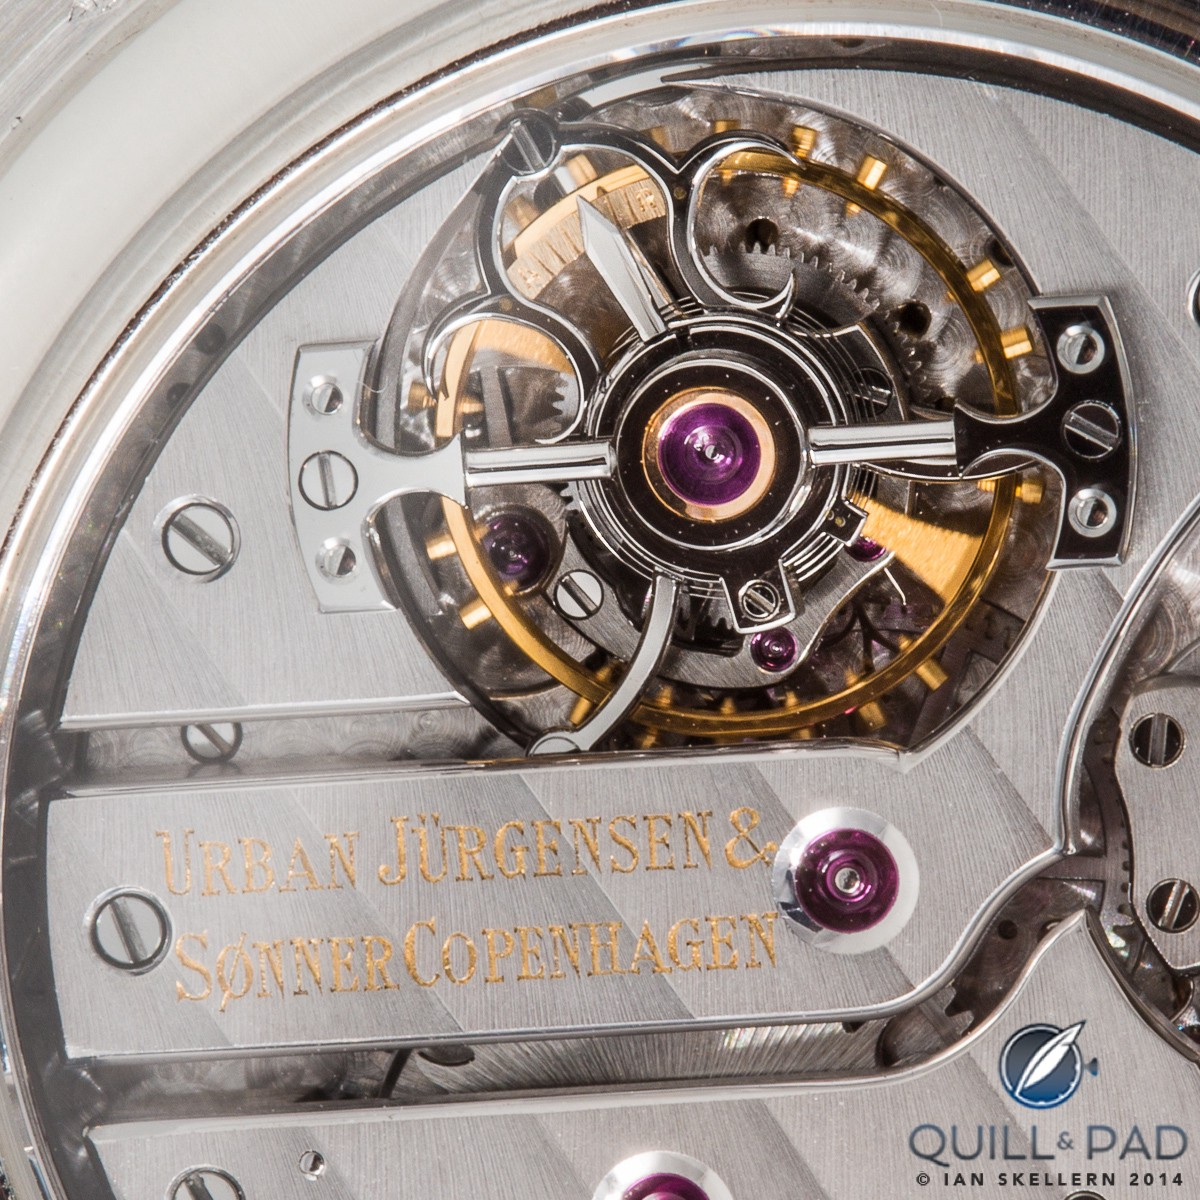 The elegant tourbillon cage of the Urban Jürgensen Tourbillon Minute Repeater